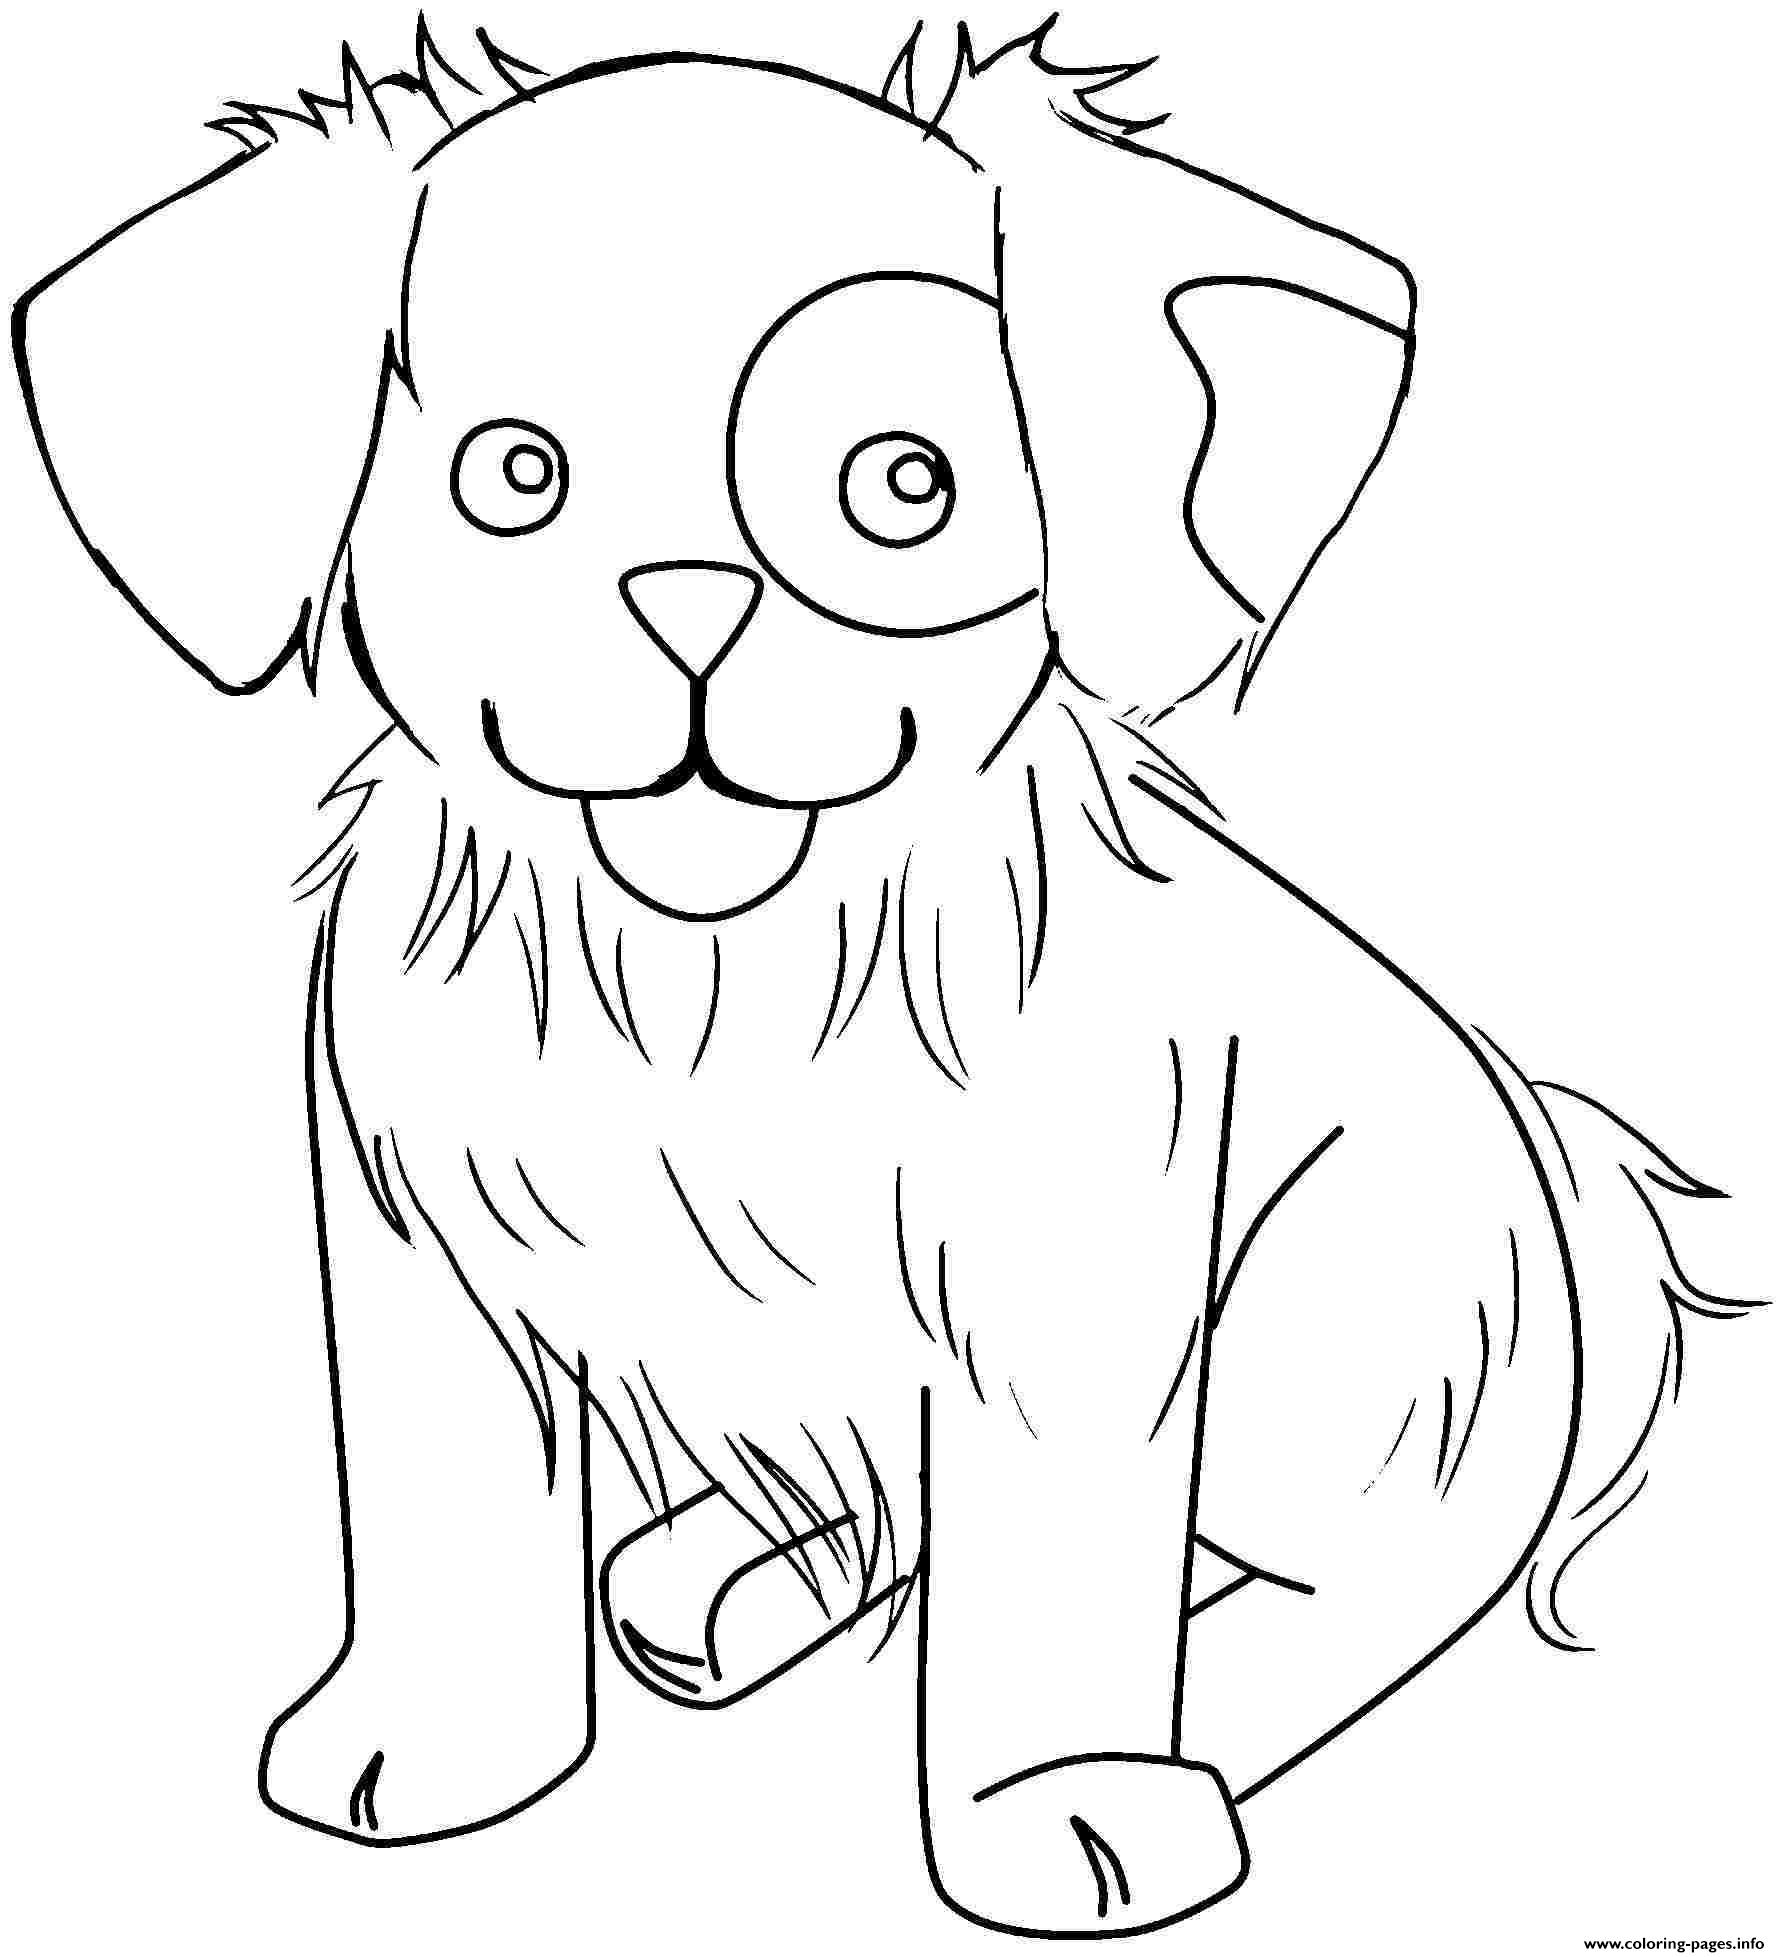 Crayola Cute Dog Animal Coloring Pages Printable